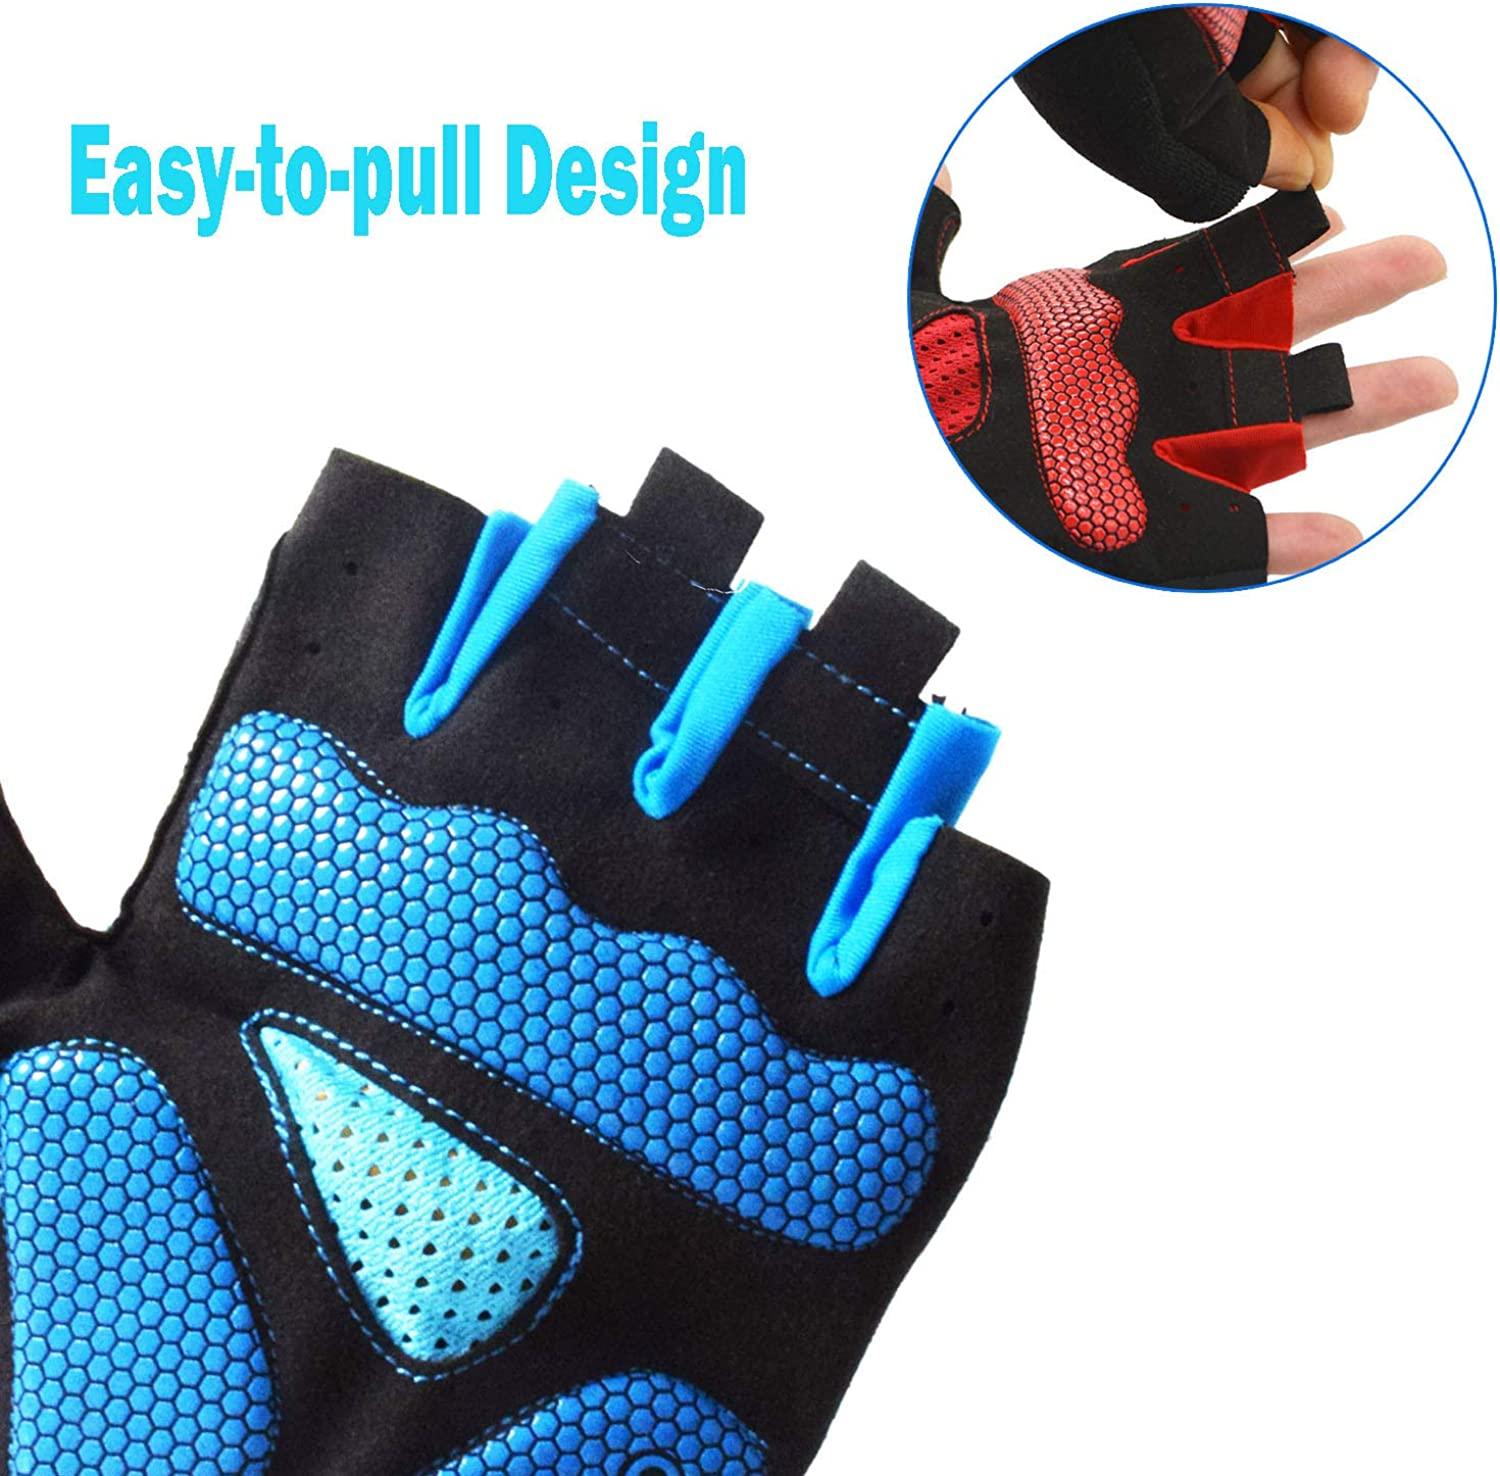 WITERY Cycling Gloves for Men and Women Mountain Bike Gloves SBR Shock-Absorbing Gel Pad Anti Slip Breathable Half Finger Road Bicycle Gloves